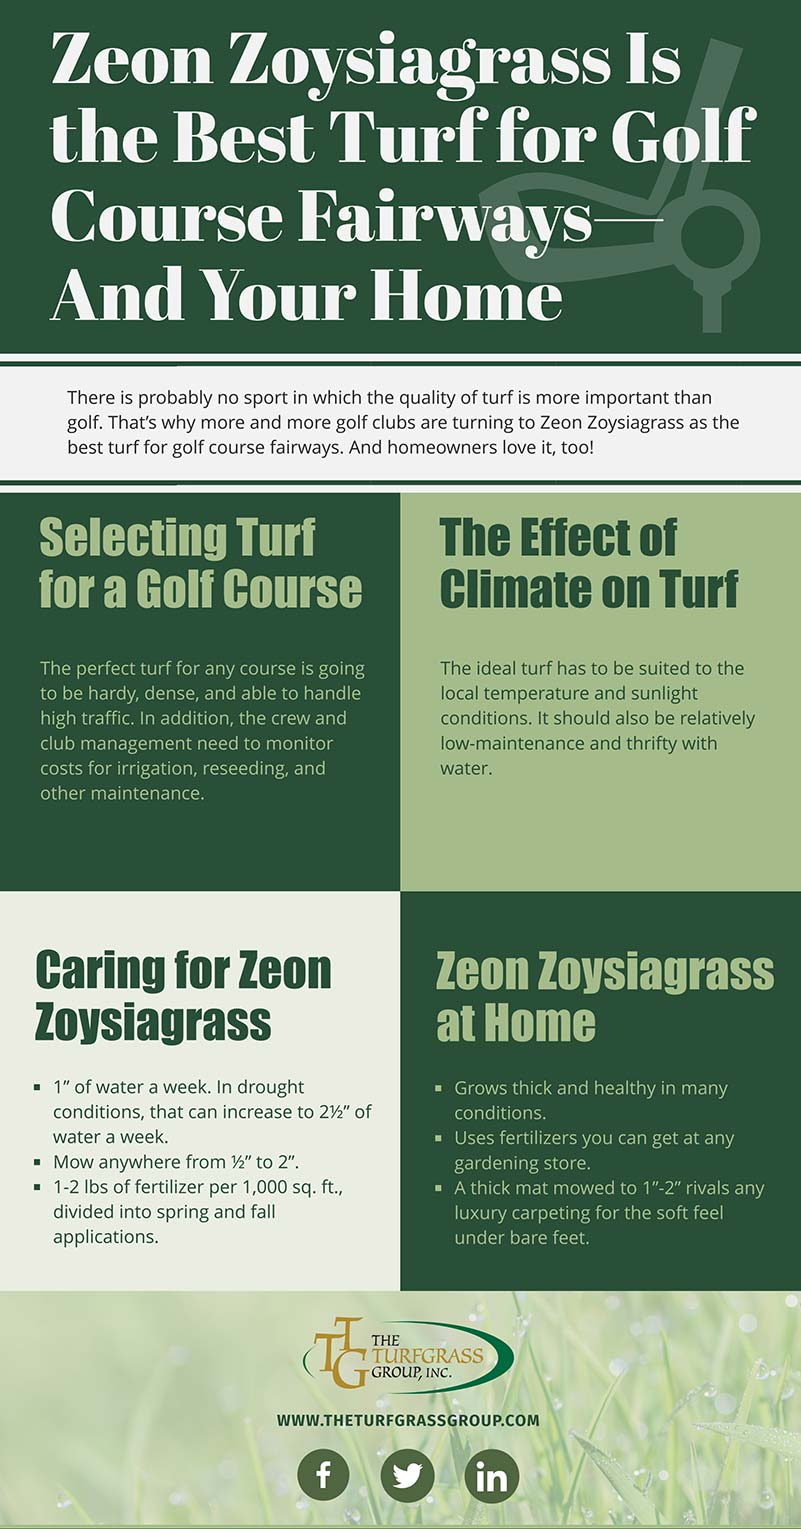 Why Zeon Zoysiagrass Is the Best Turf for Golf Course Fairways—And Your Home [infographic]